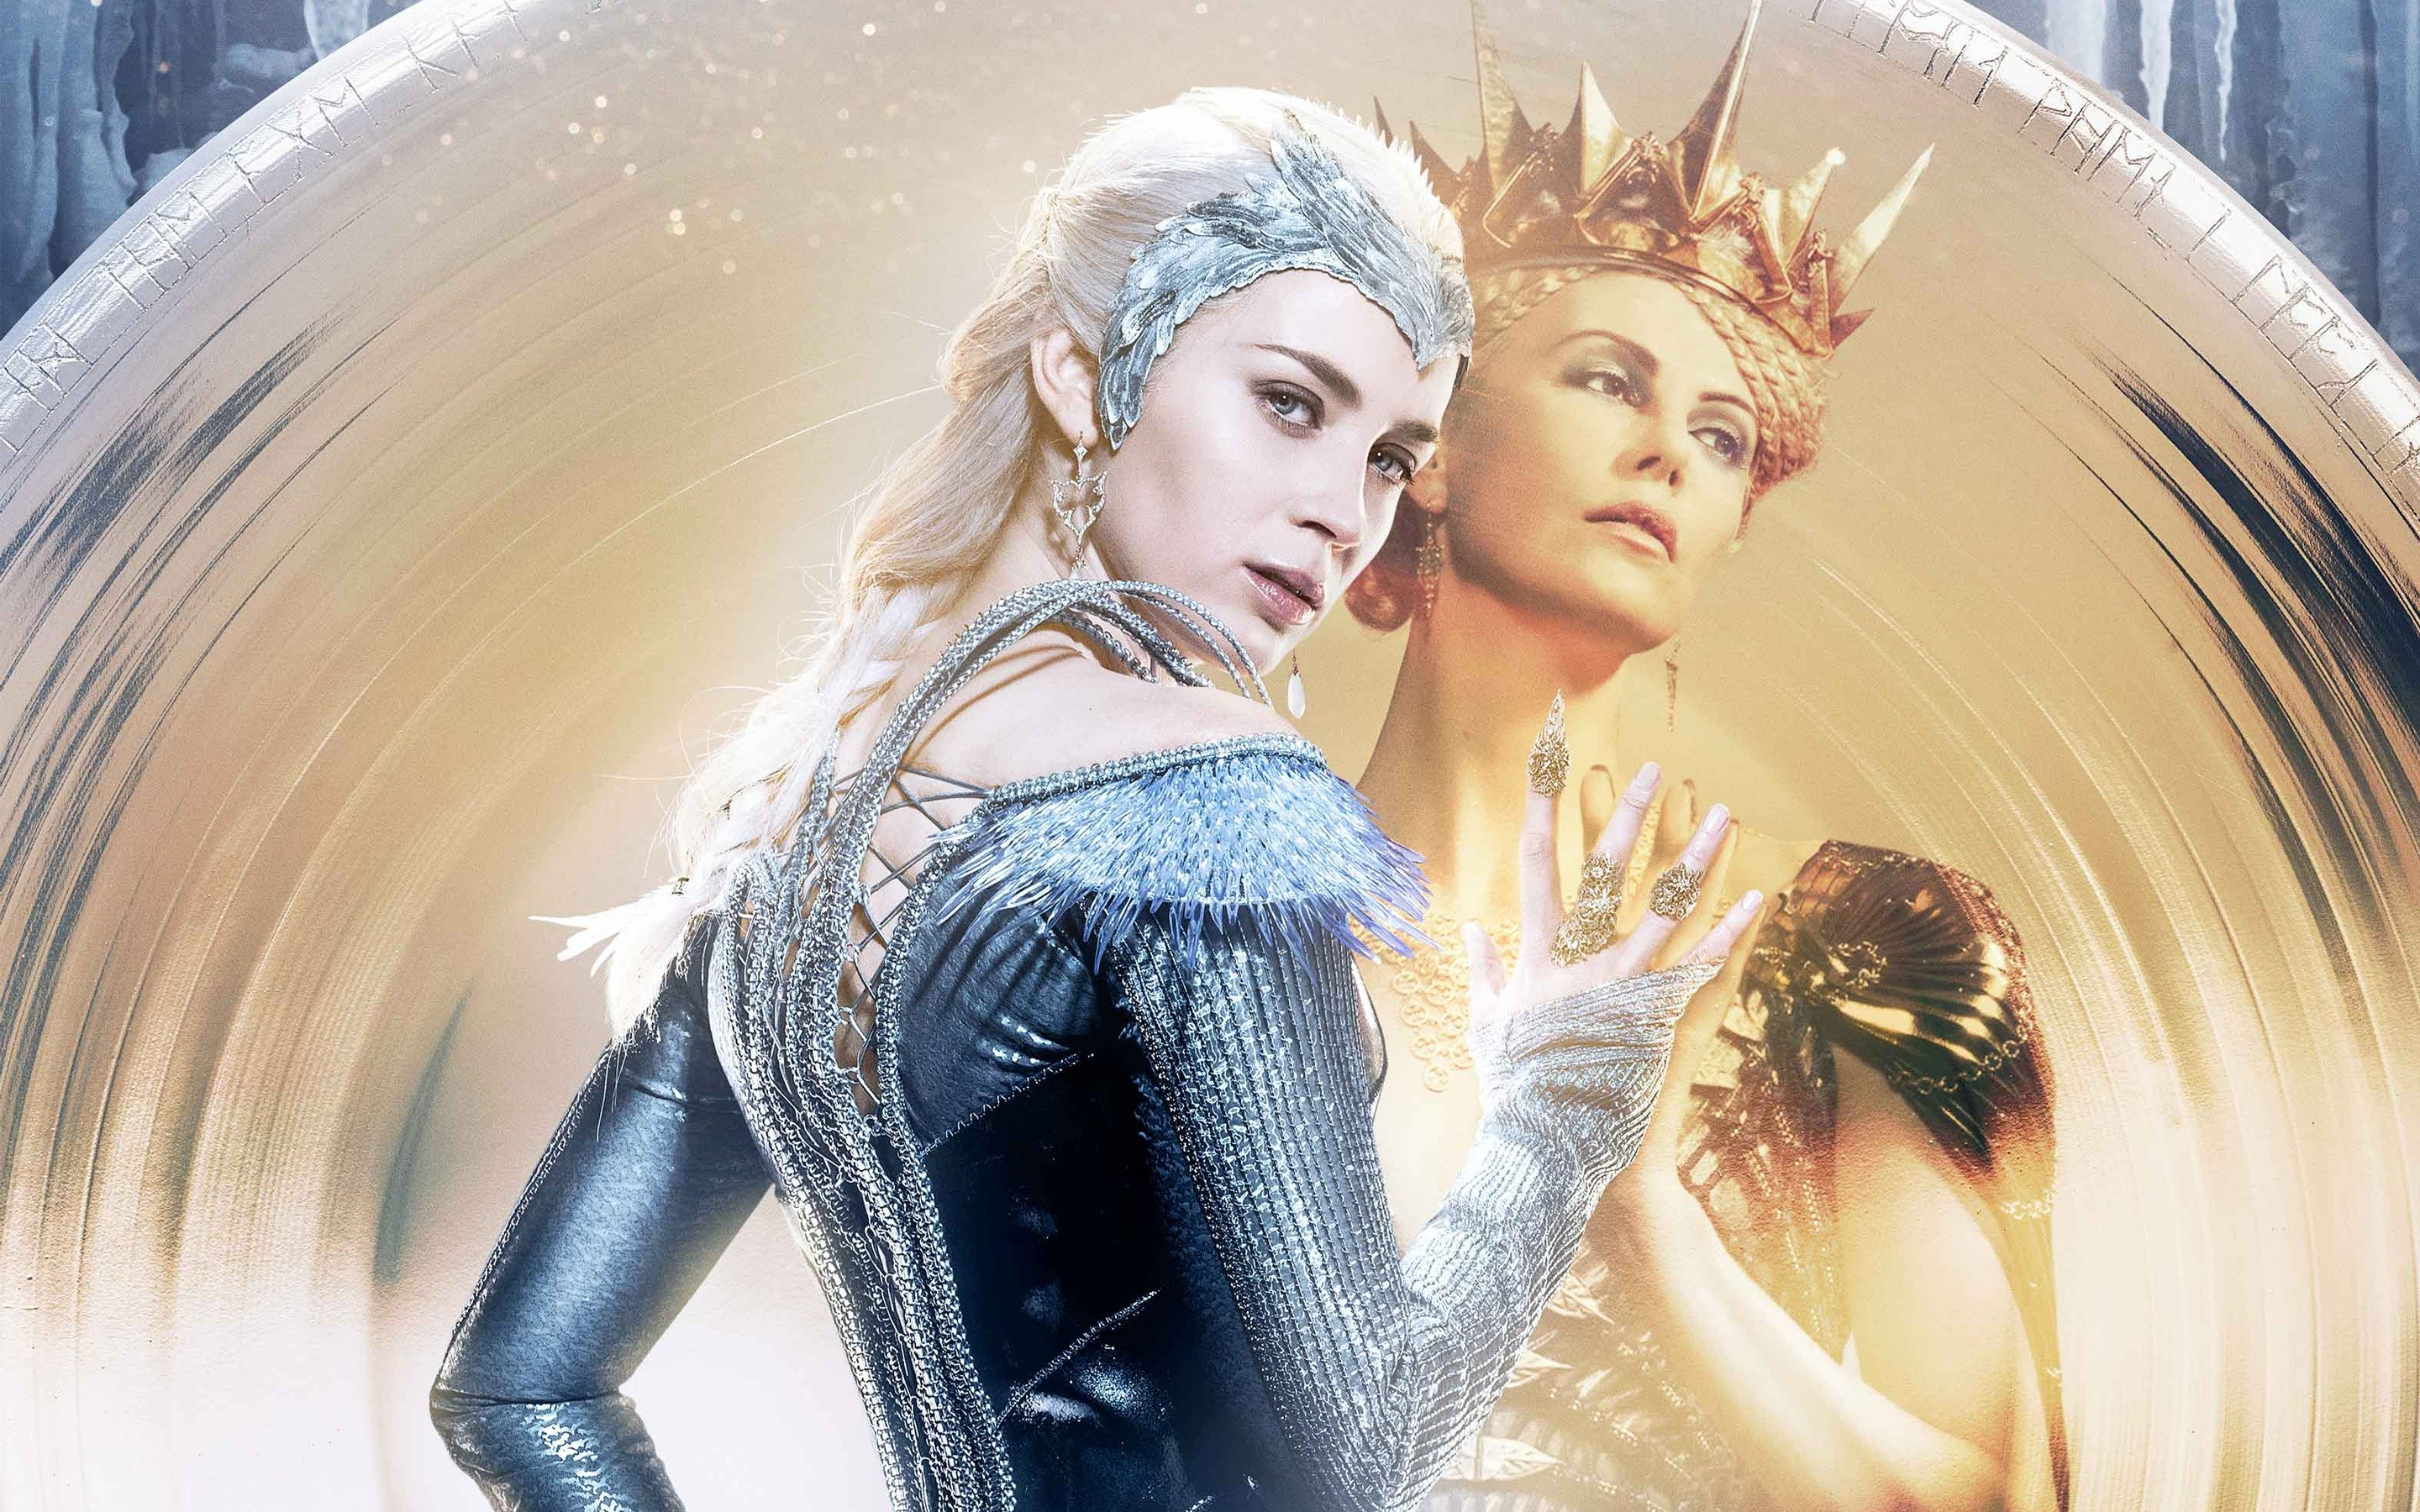 Wallpaper Ice queen in The hunter and the ice queen